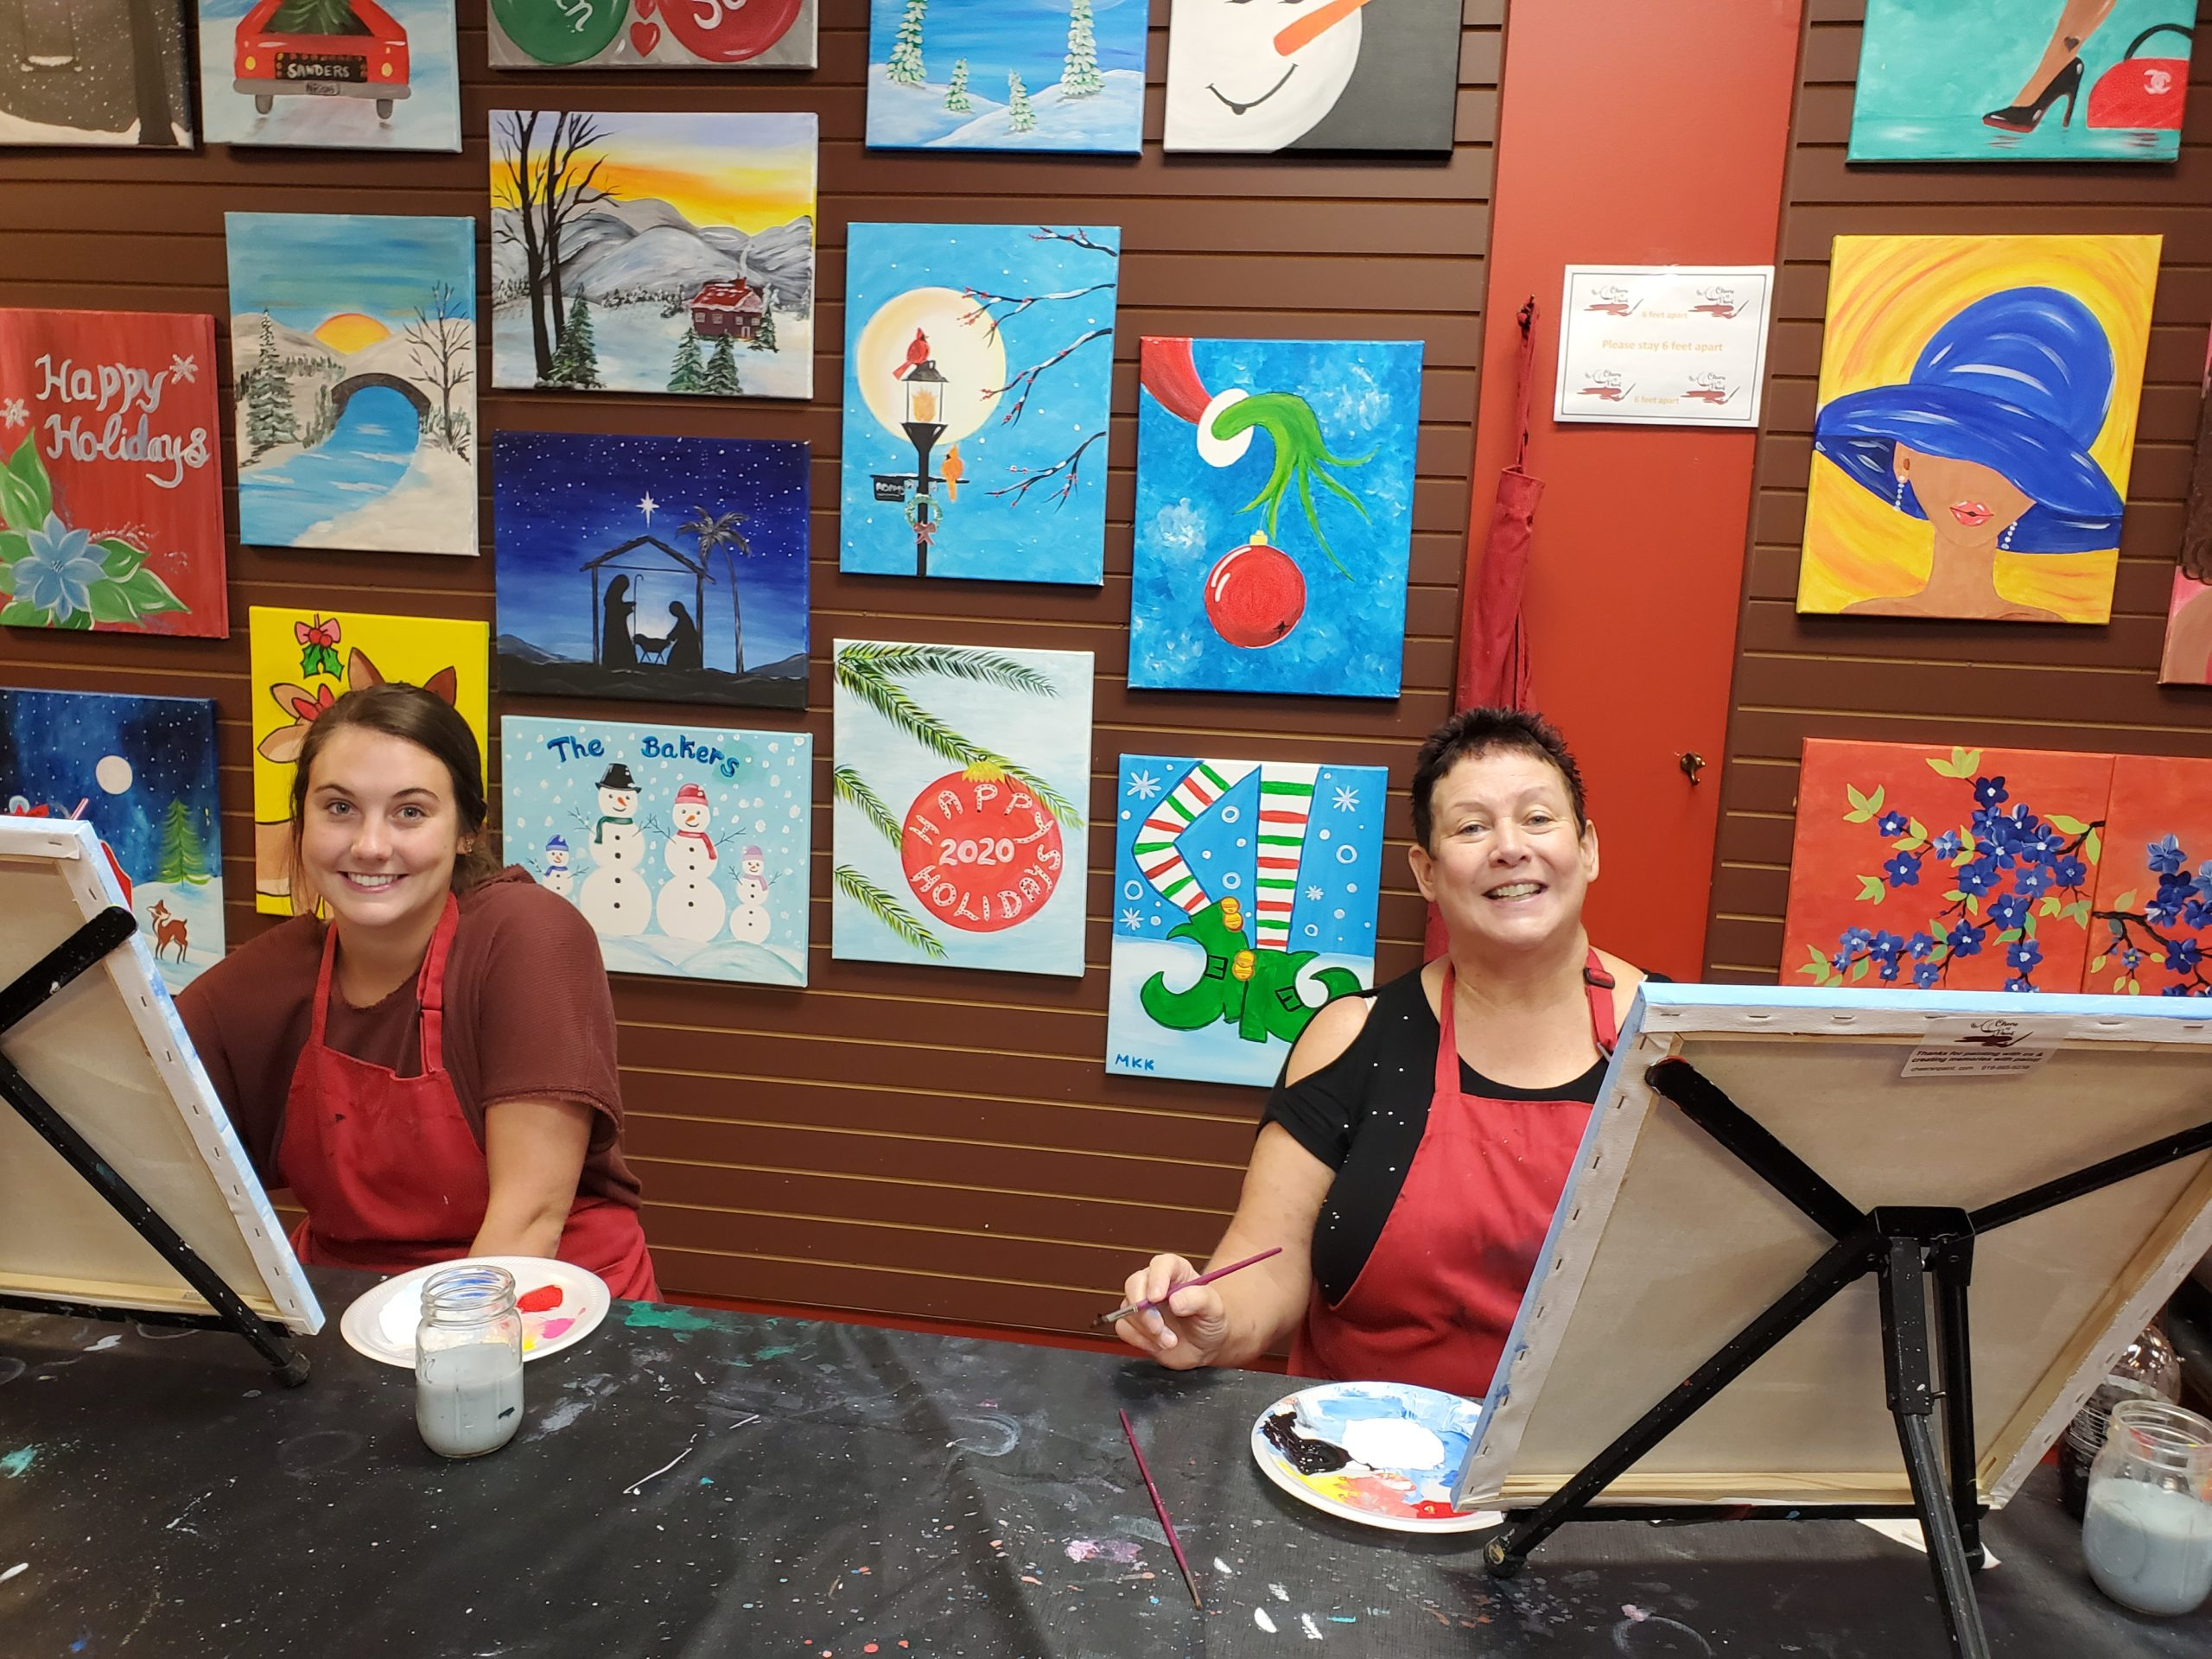 Paint Class: Open Studio Paint Session In-Person Sip And Paint Class At Cheers N Paint In Cary, Nc